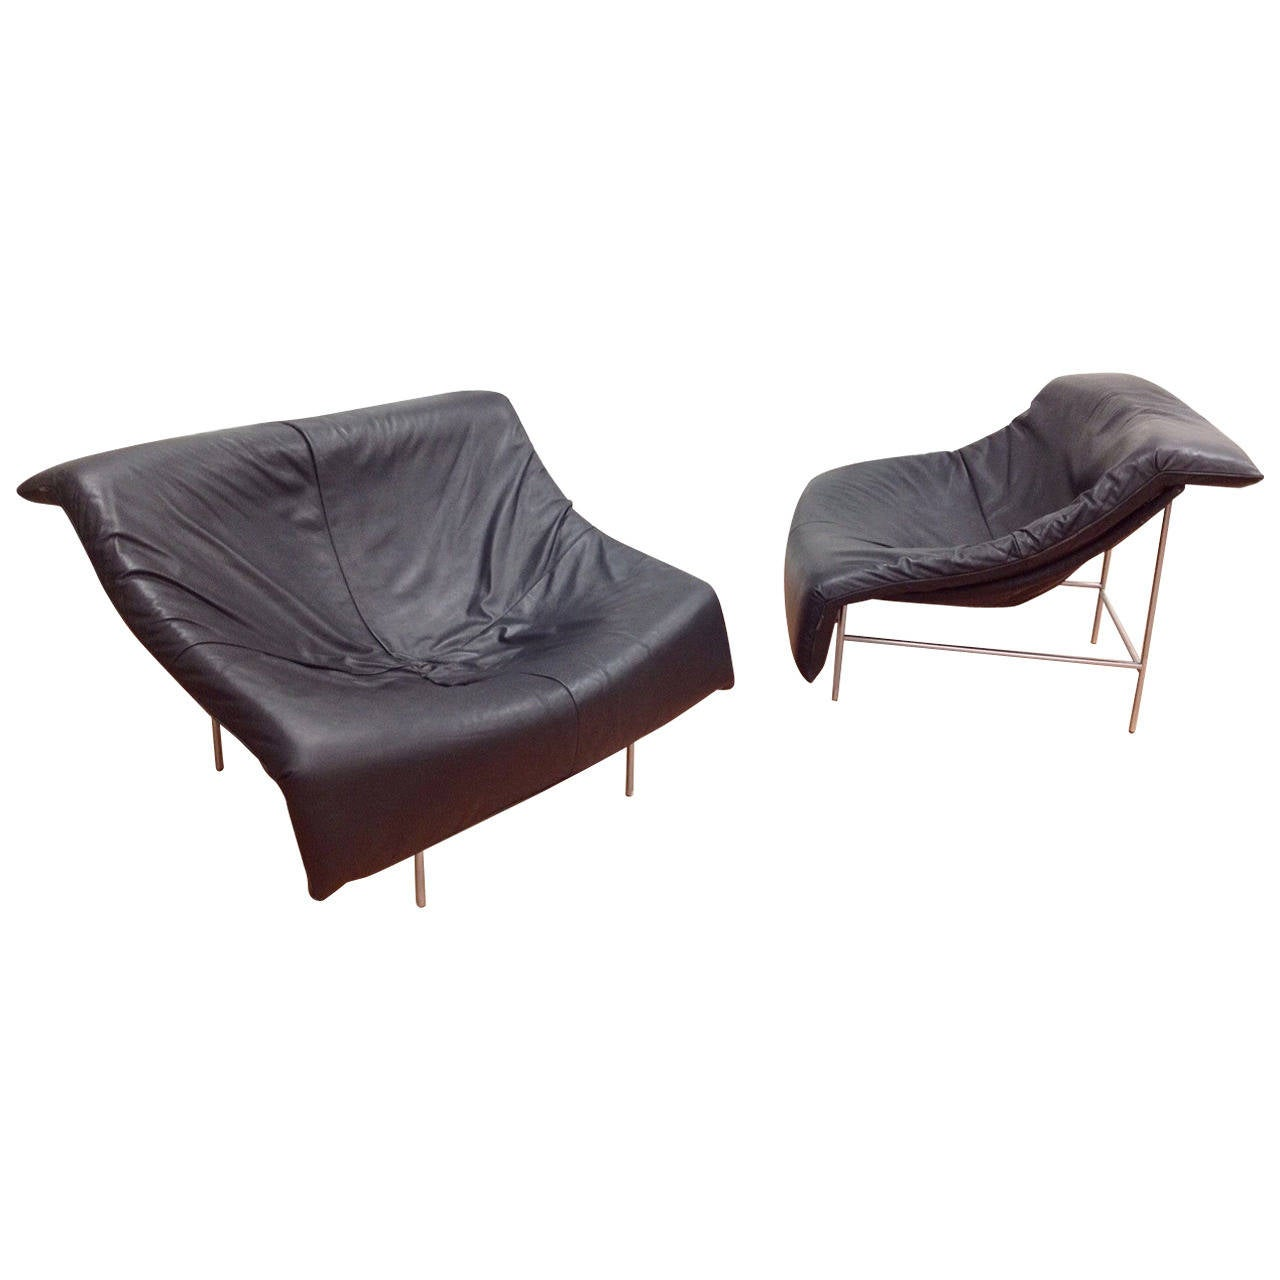 Rare Pair of Montis Leather Butterfly Lounge Chairs by Gerard Van Den Berg at